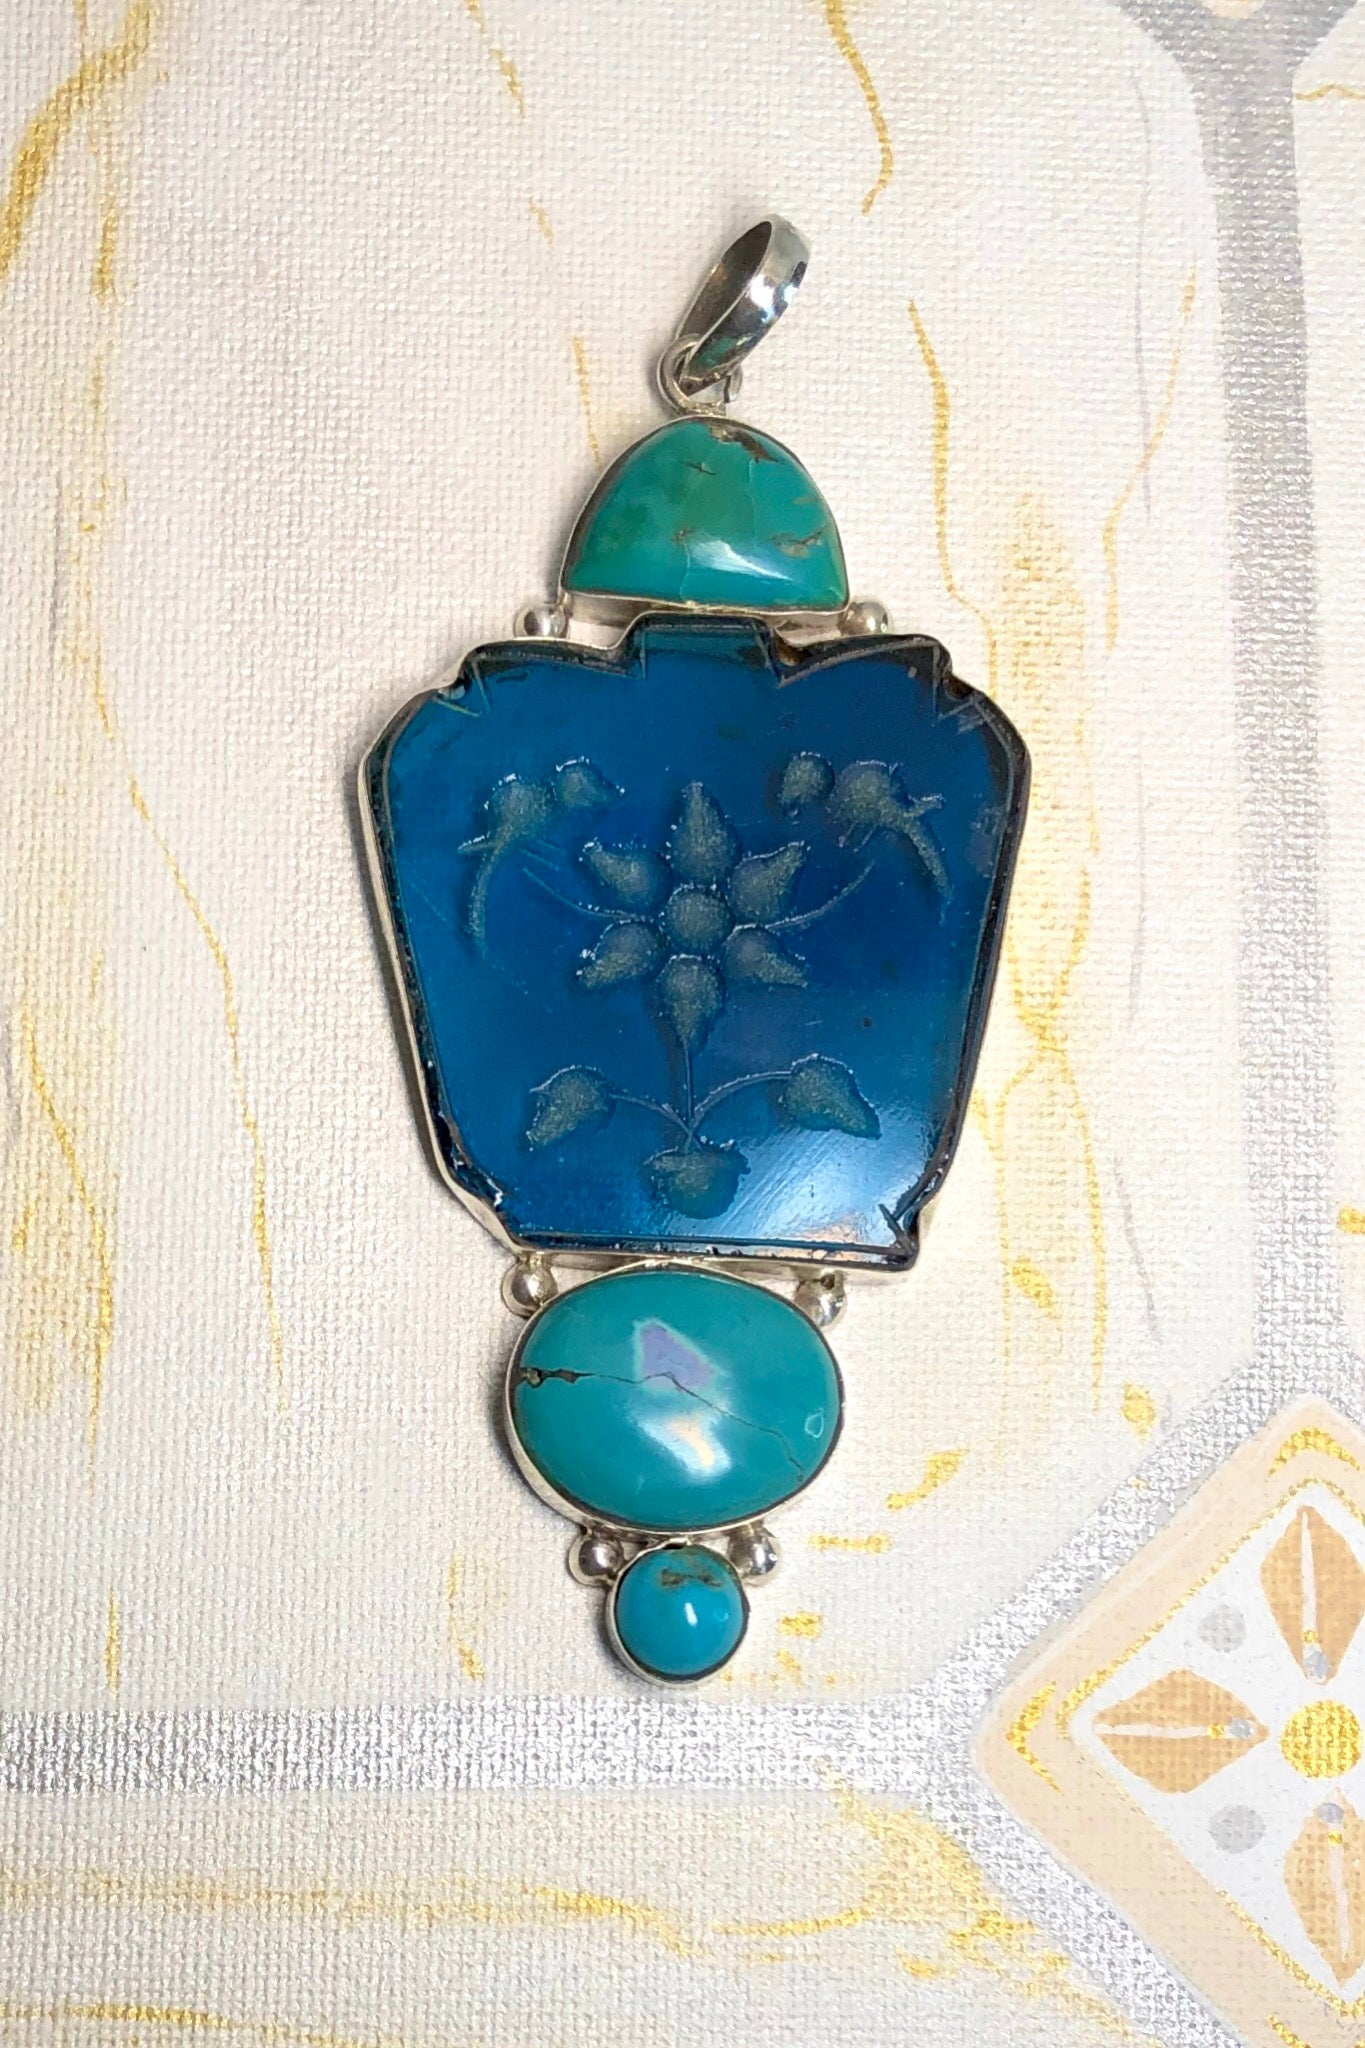 Echo Intaglio Blue Pendant is a mystical and historical pendant featuring Unsymmetrical cut turquoise glass intaglio and each piece has been set in silver.